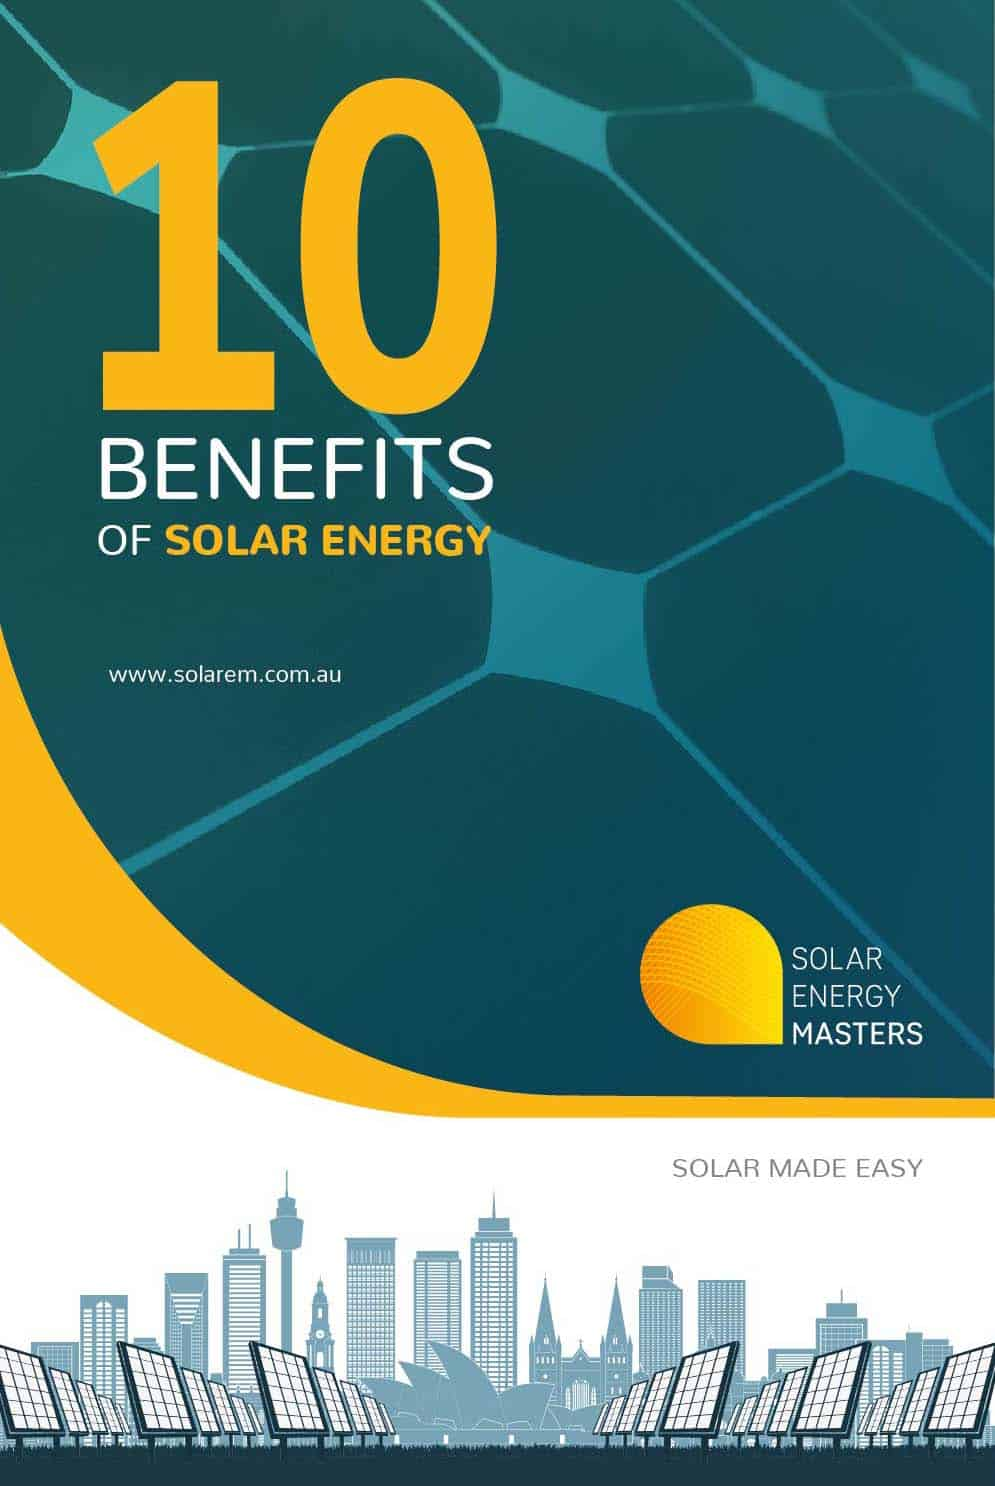 Benefits of Solar Panels - 10 Facts You May Not Know